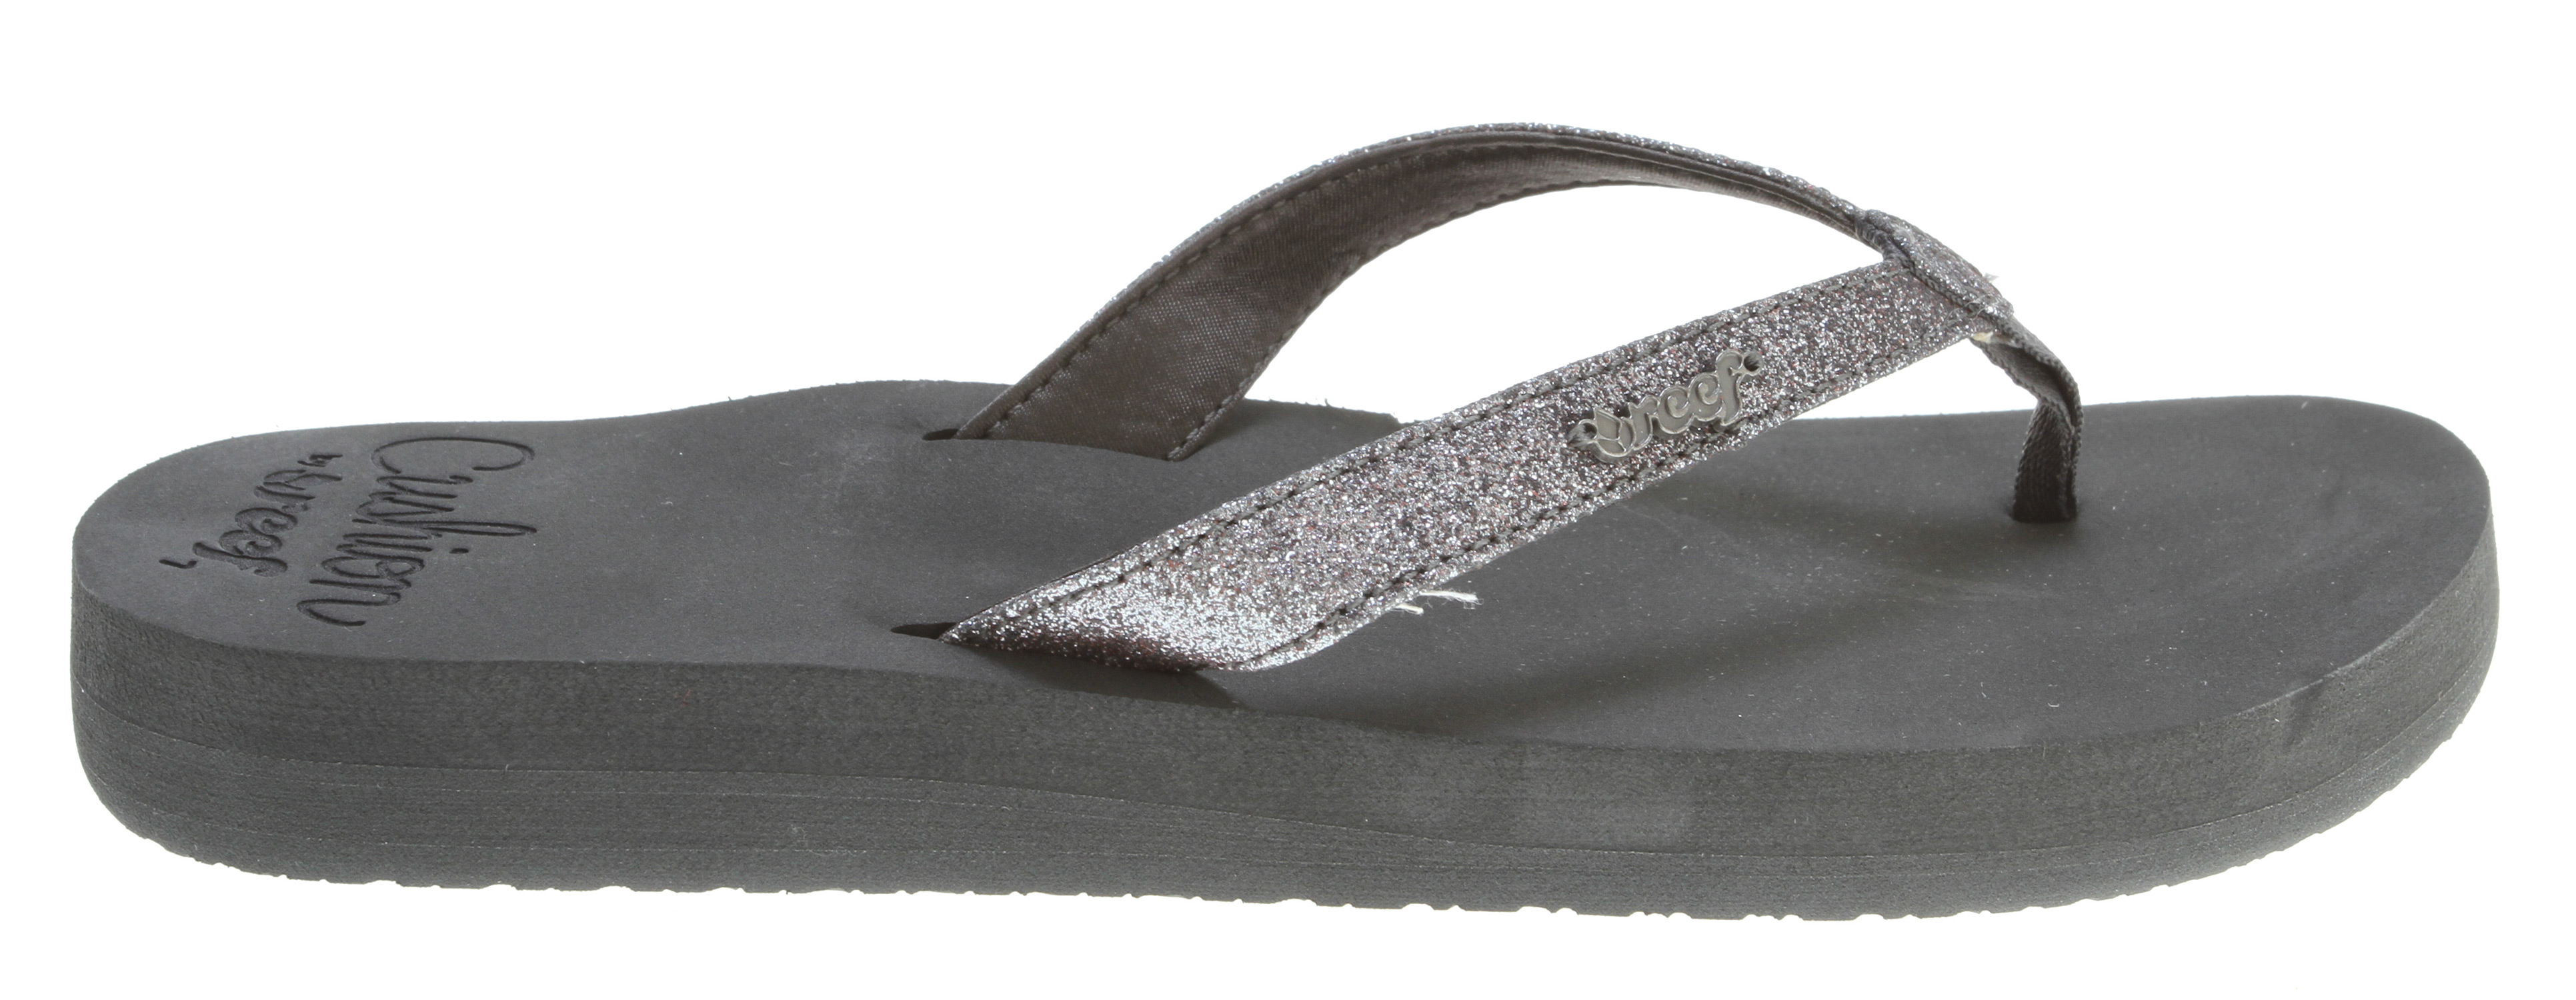 Surf Key Features of the Reef Star Cushion Sandals: Sparkly strap with soft satin lining Featuring super soft reef cushion eva with anatomical arch support Rubber sponge outsole for flexibility - $23.95